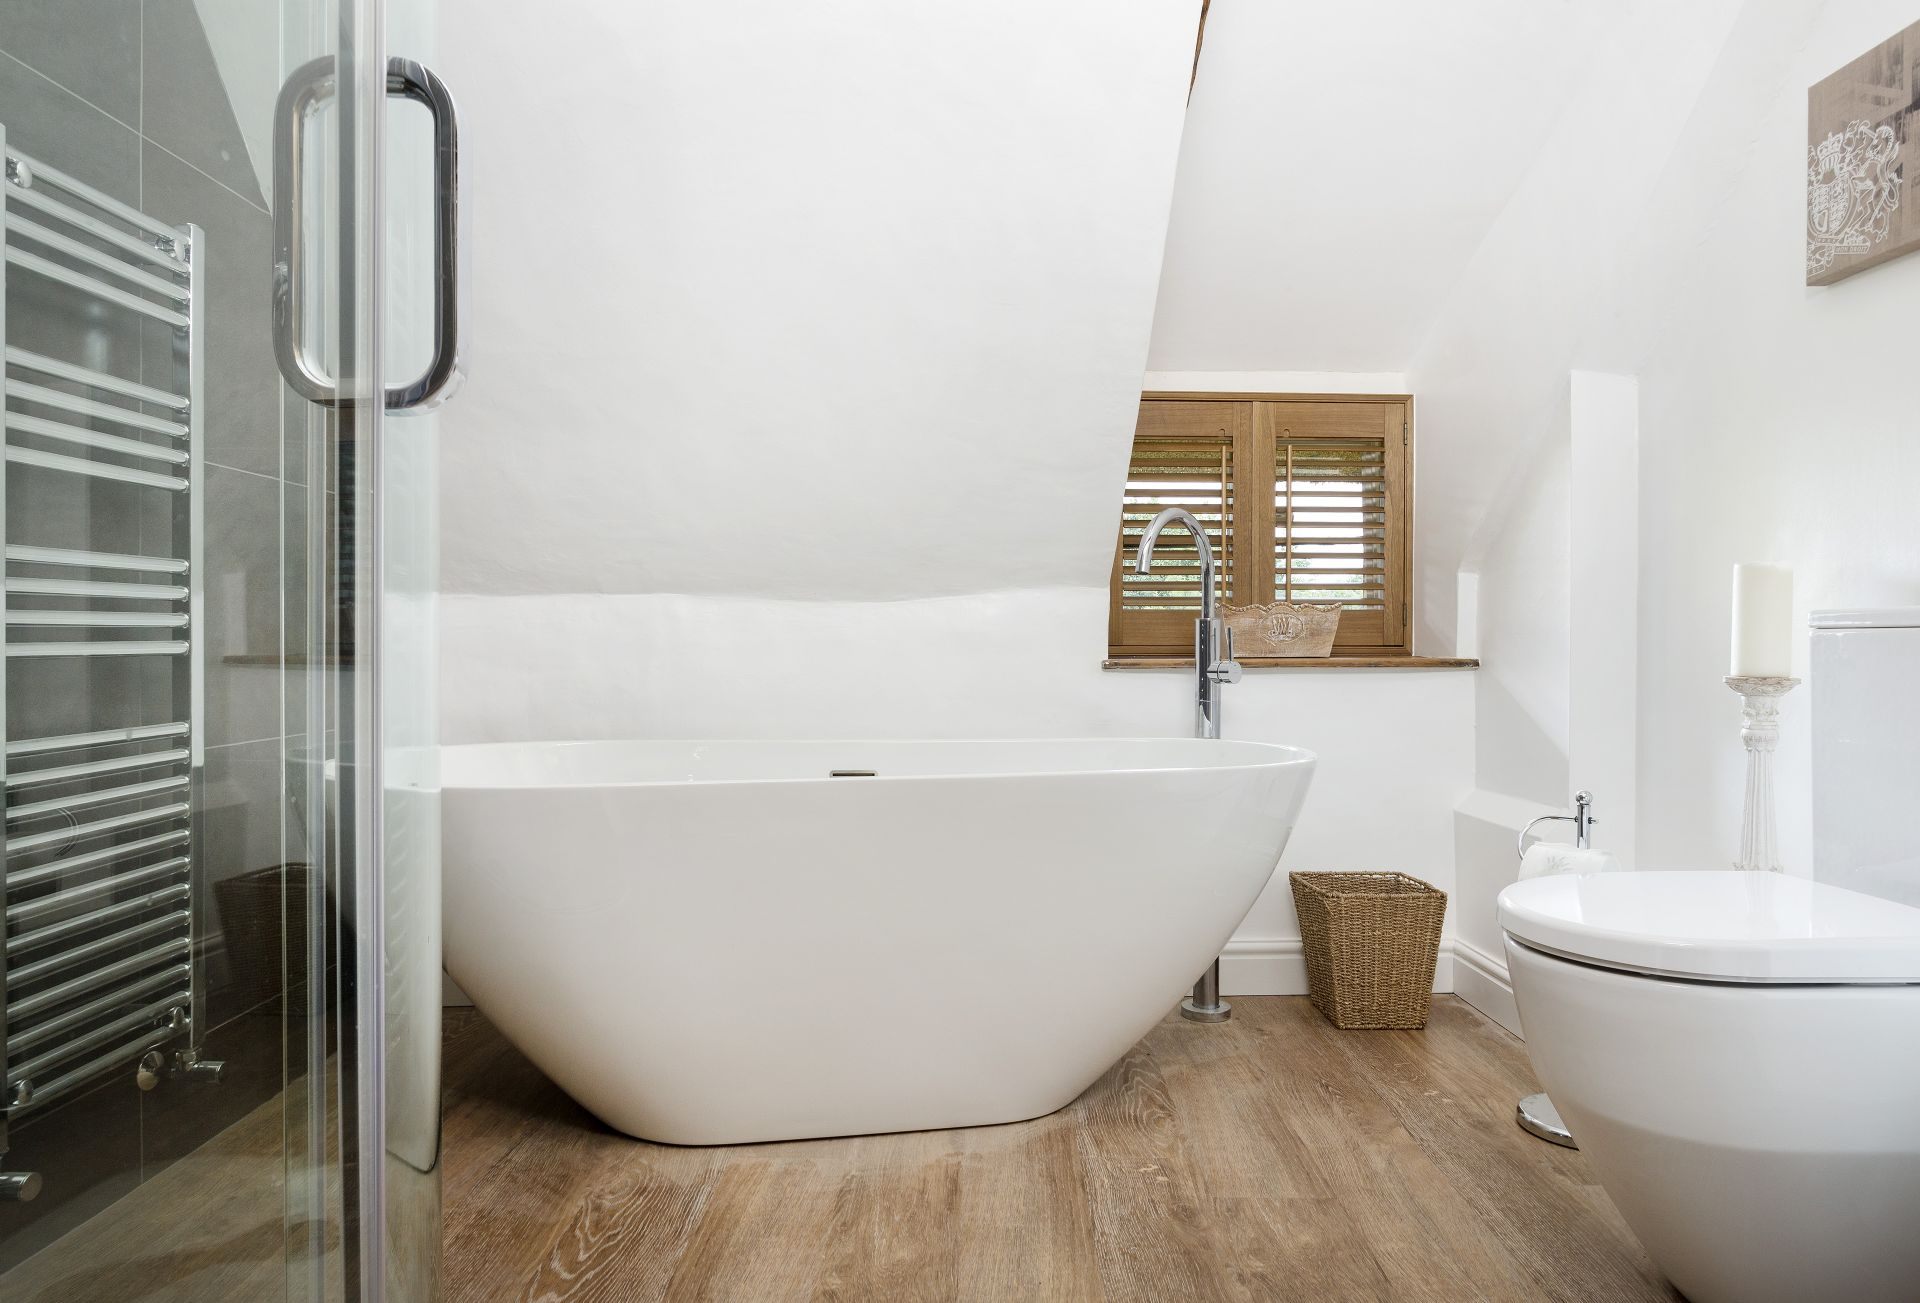 First floor:  Bathroom with a separate walk-in shower and impressively deep bath